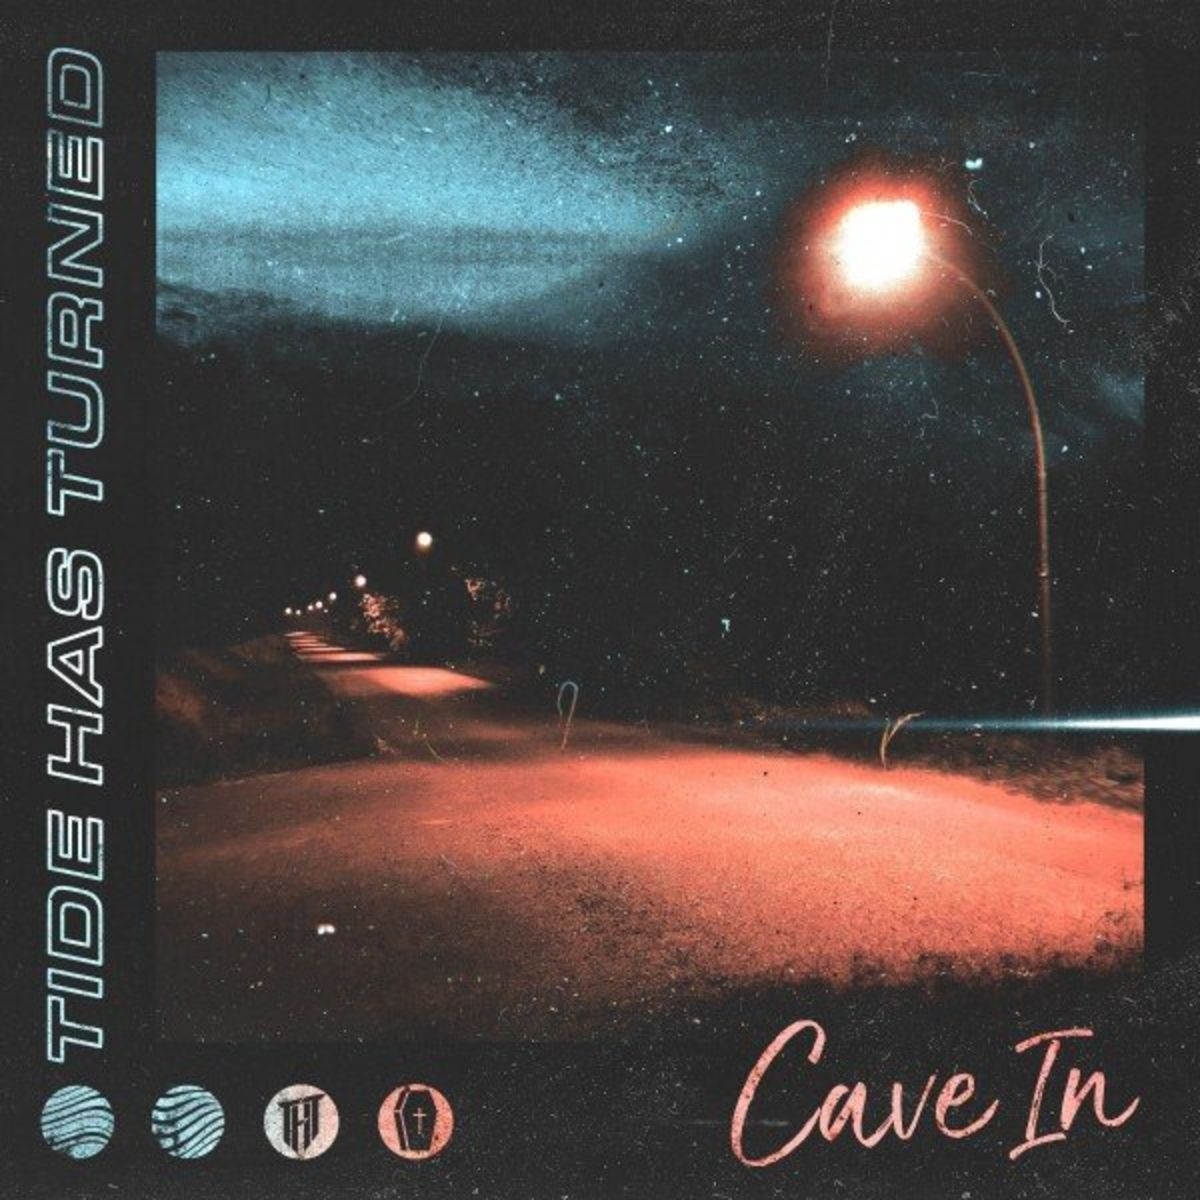 Tide Has Turned - Cave In [single] (2020)